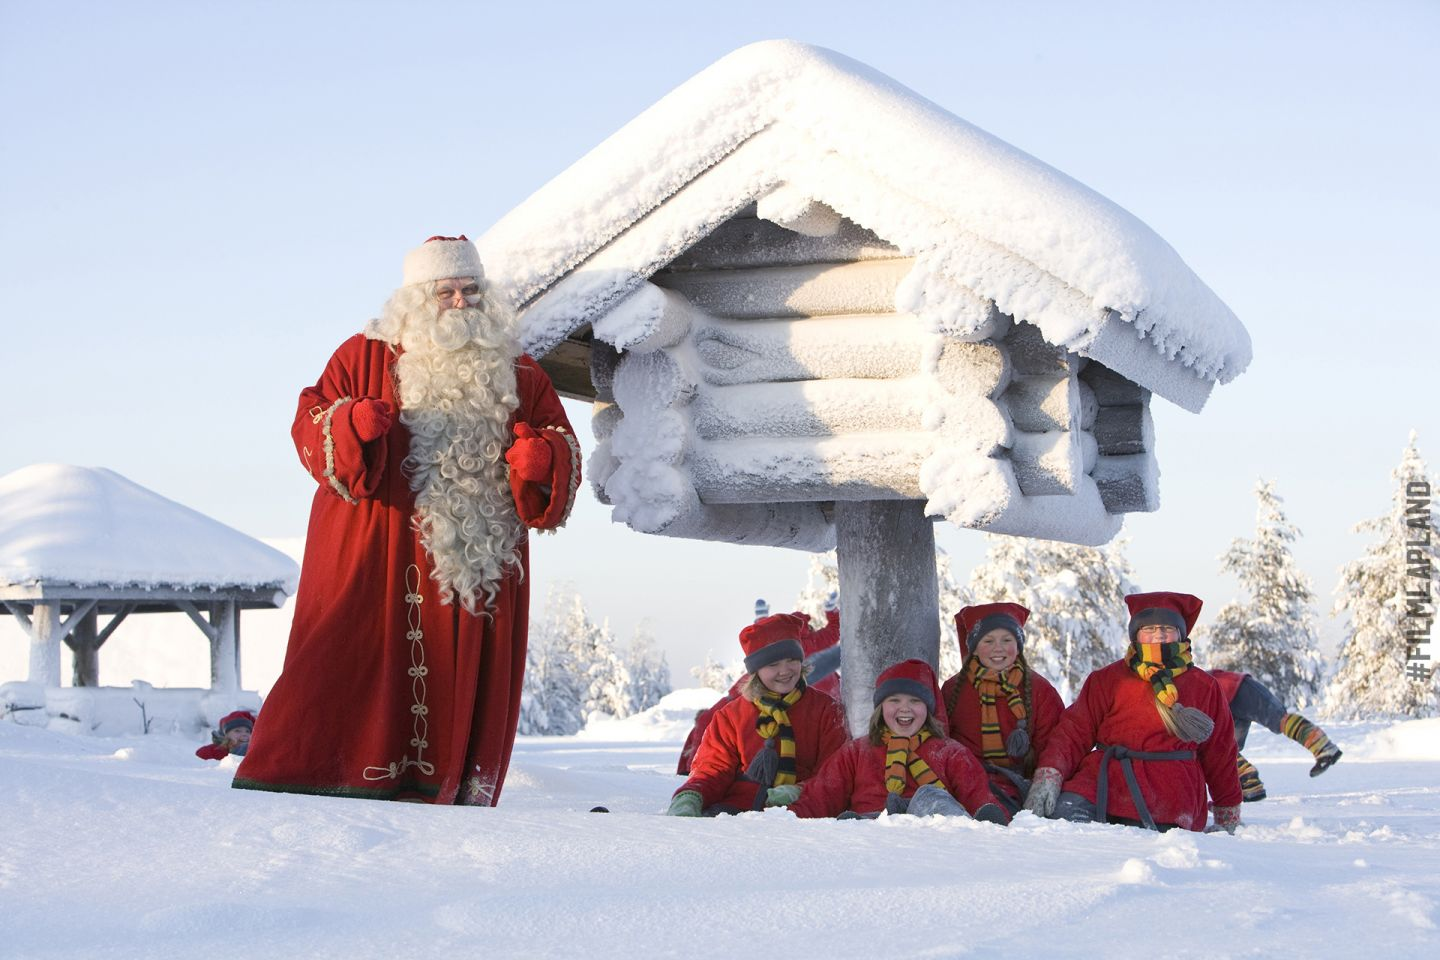 Santa Claus and elves in Rovaniemi, Finland